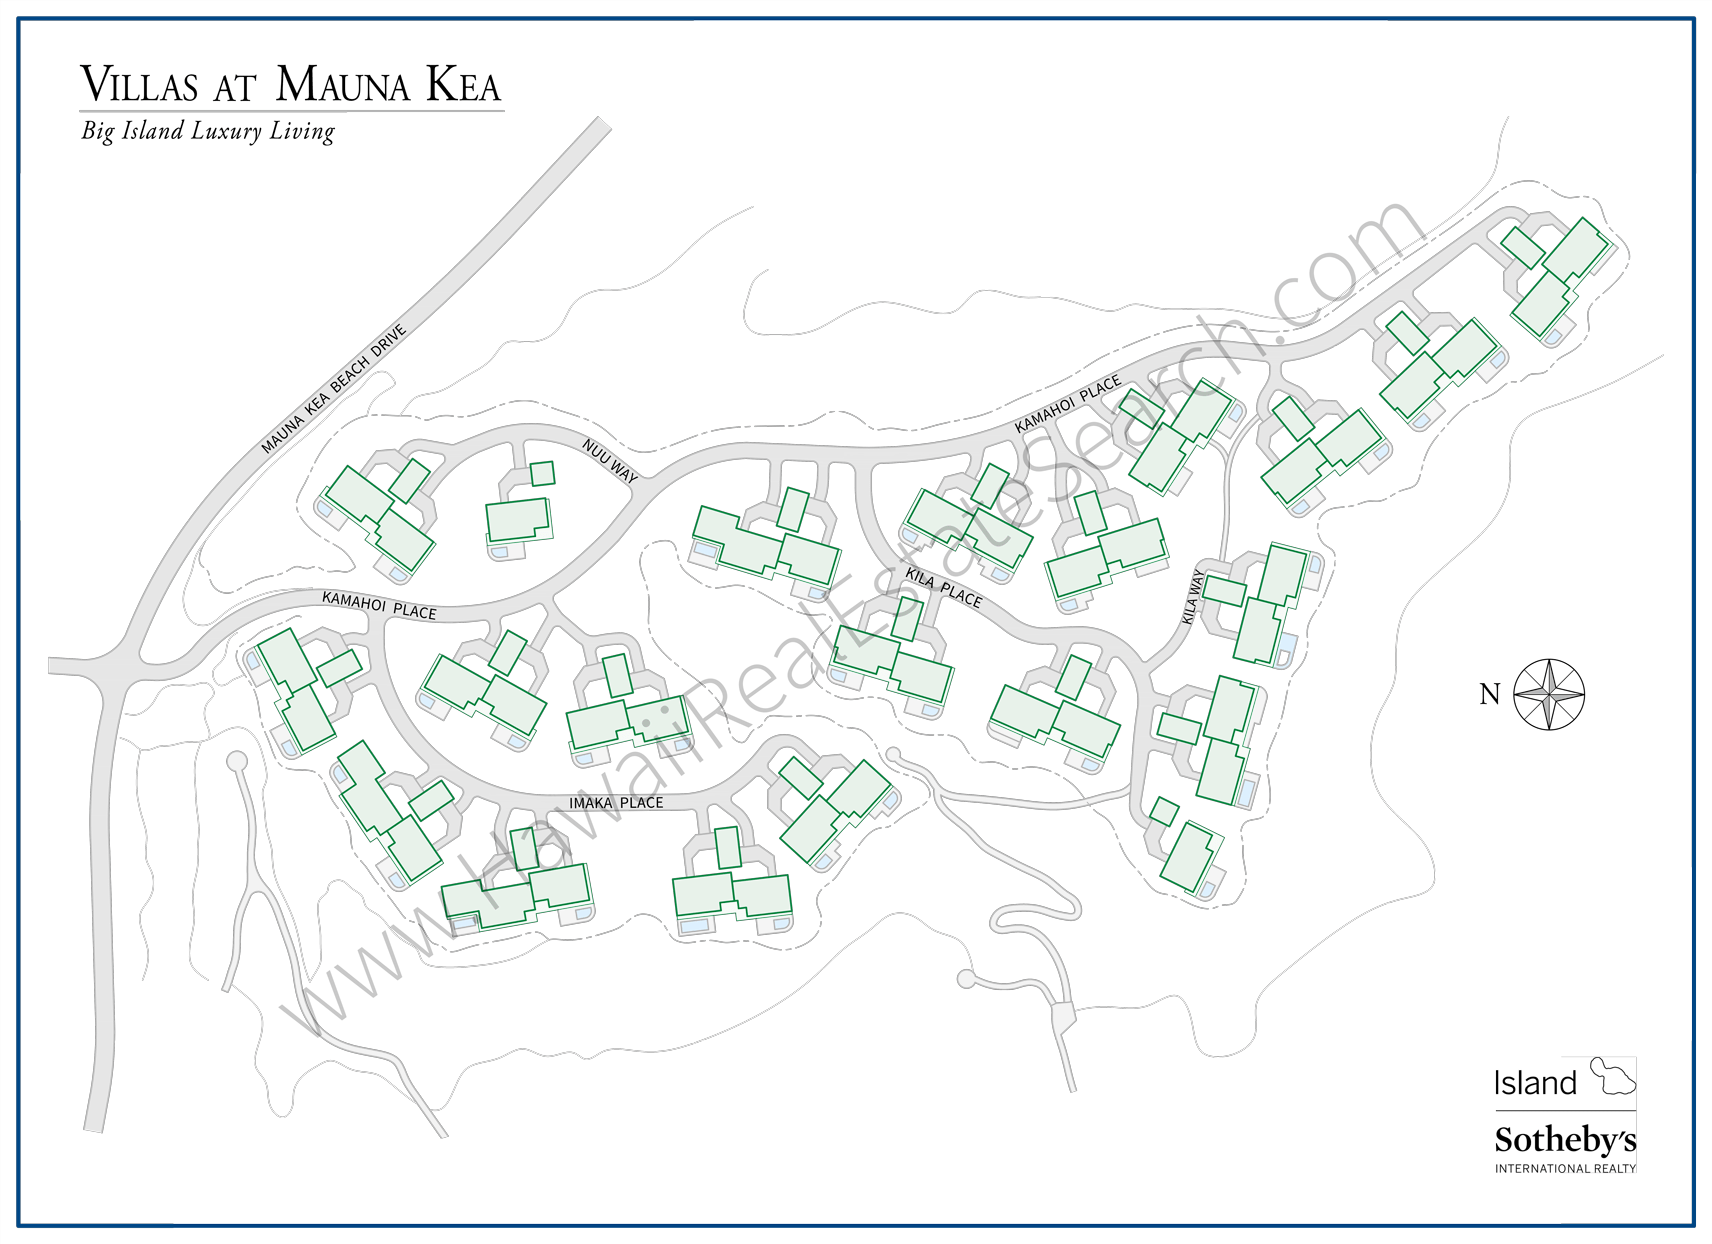 Villas at Mauna Kea Property Map